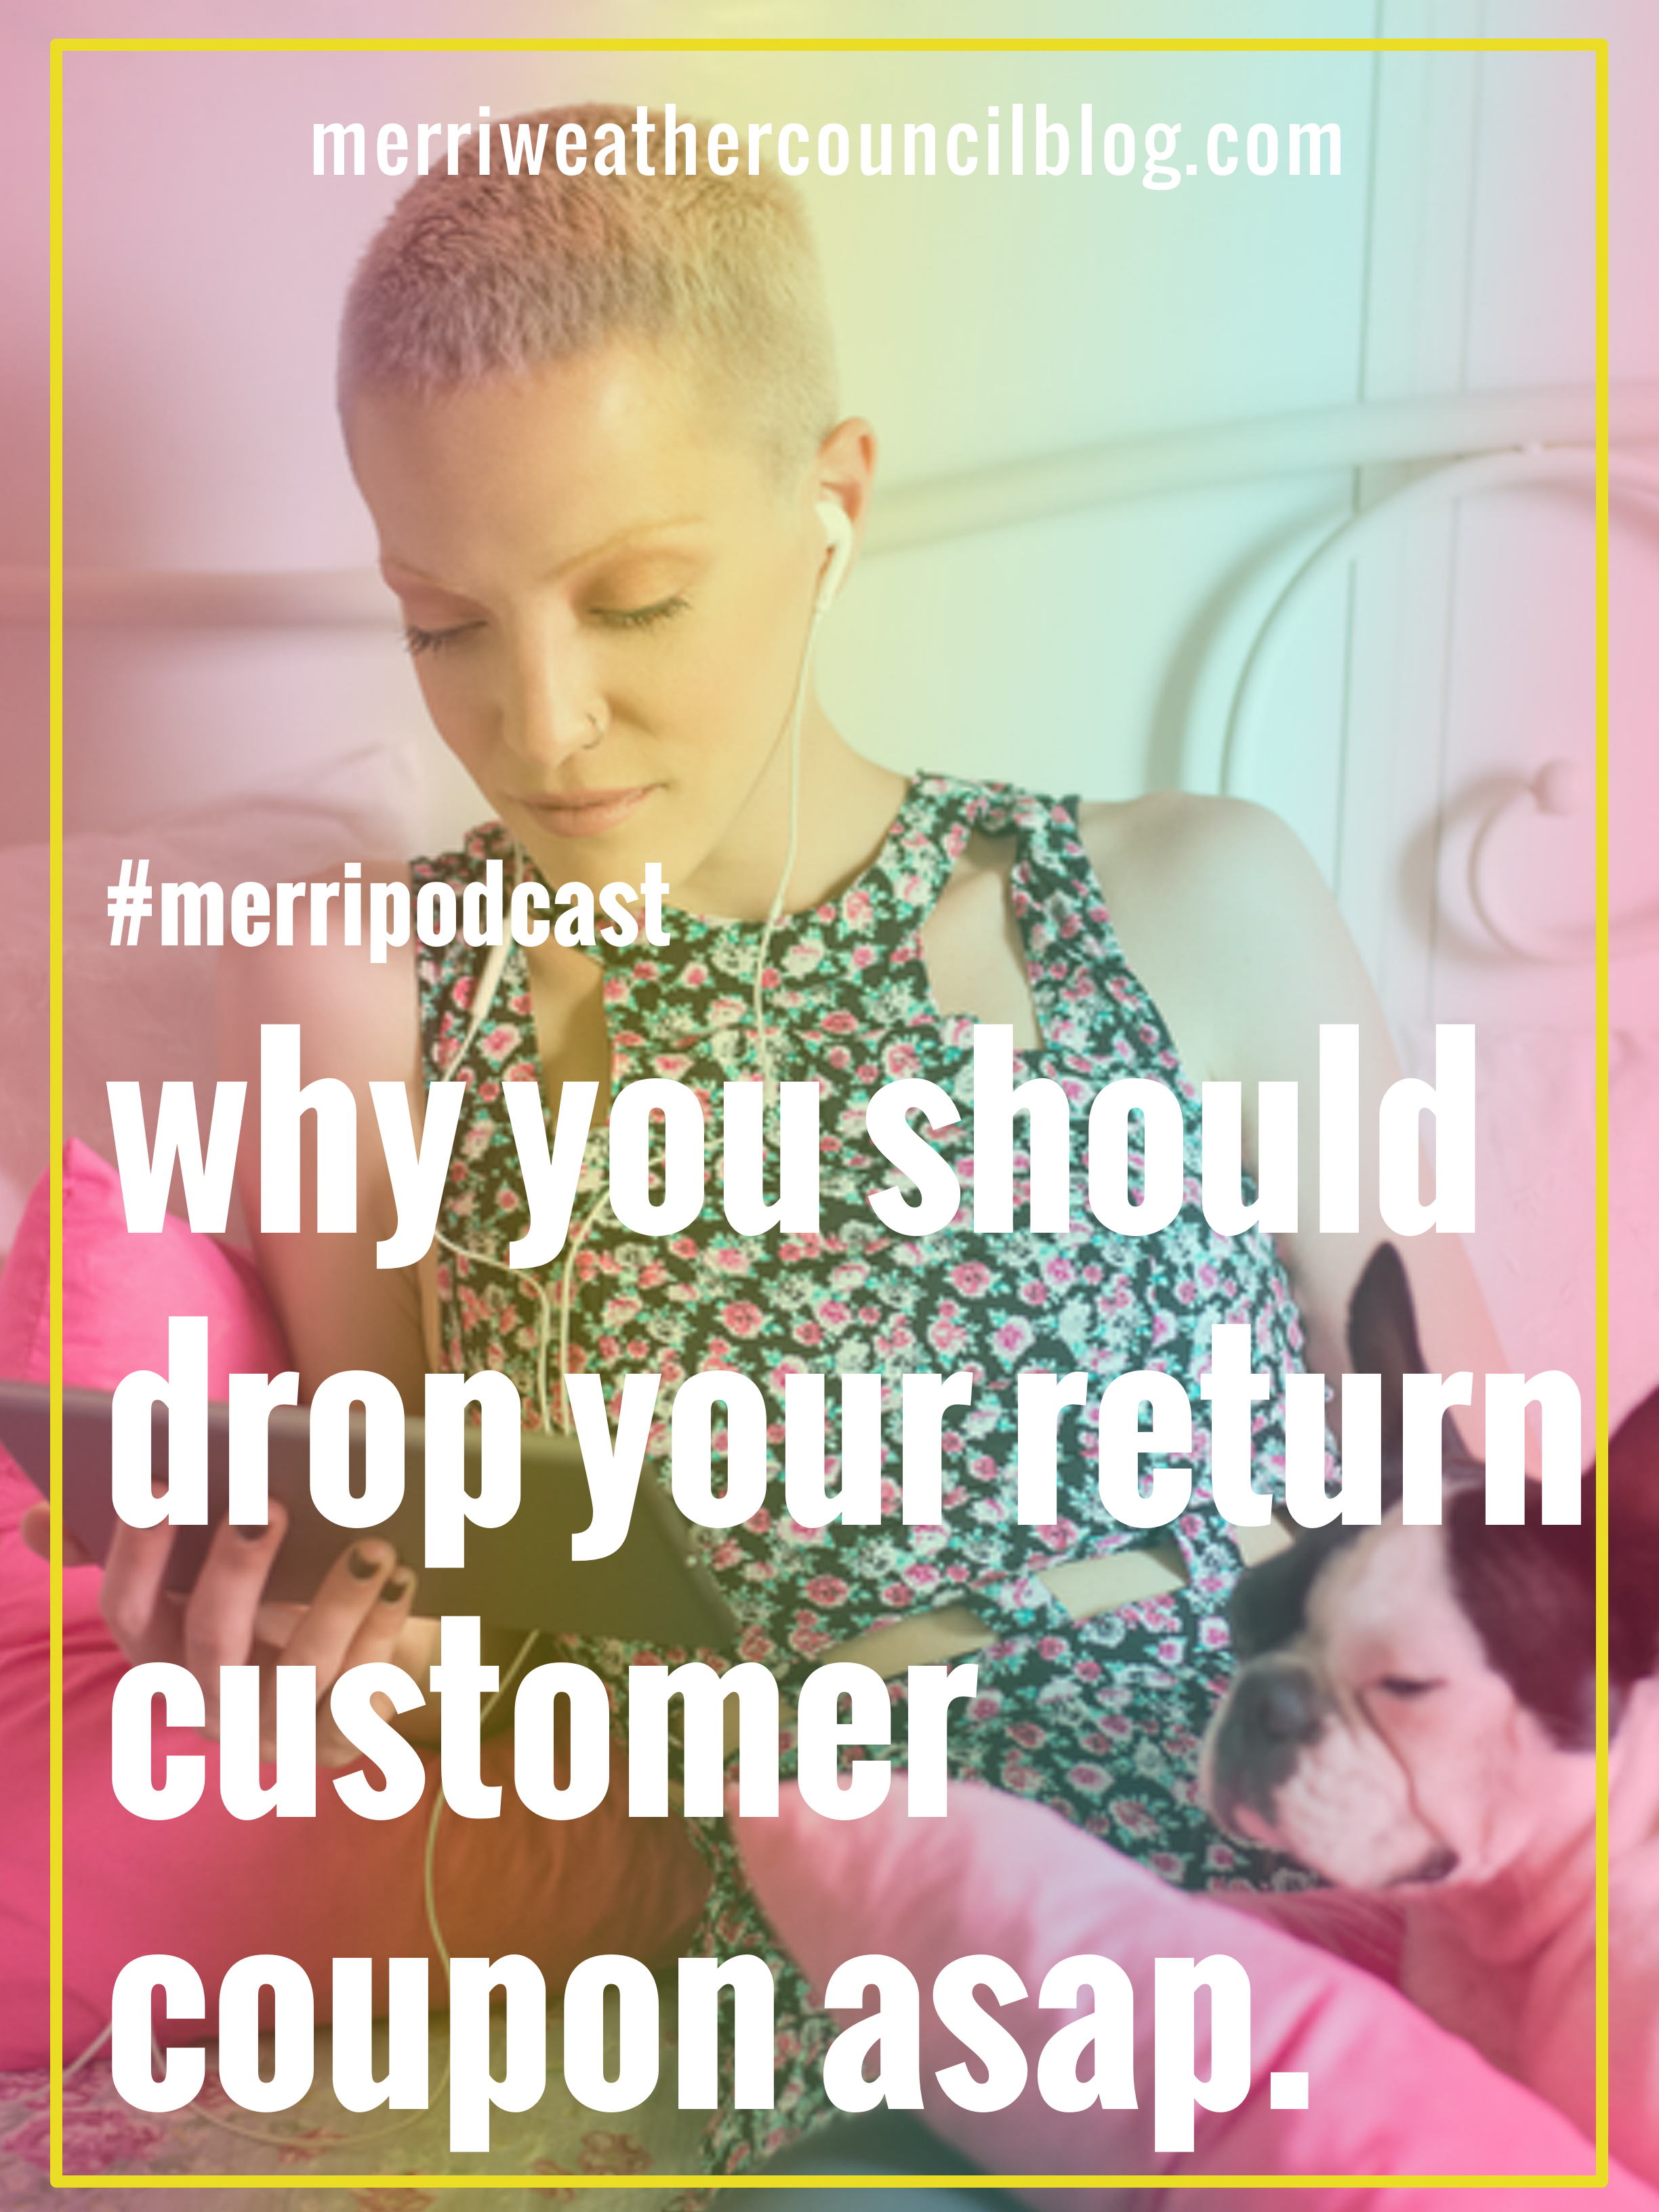 Episode 31: Why You Should Drop Your Return Customer Coupon (aka stop discounting second orders, too) | The Merriweather Council Podcast